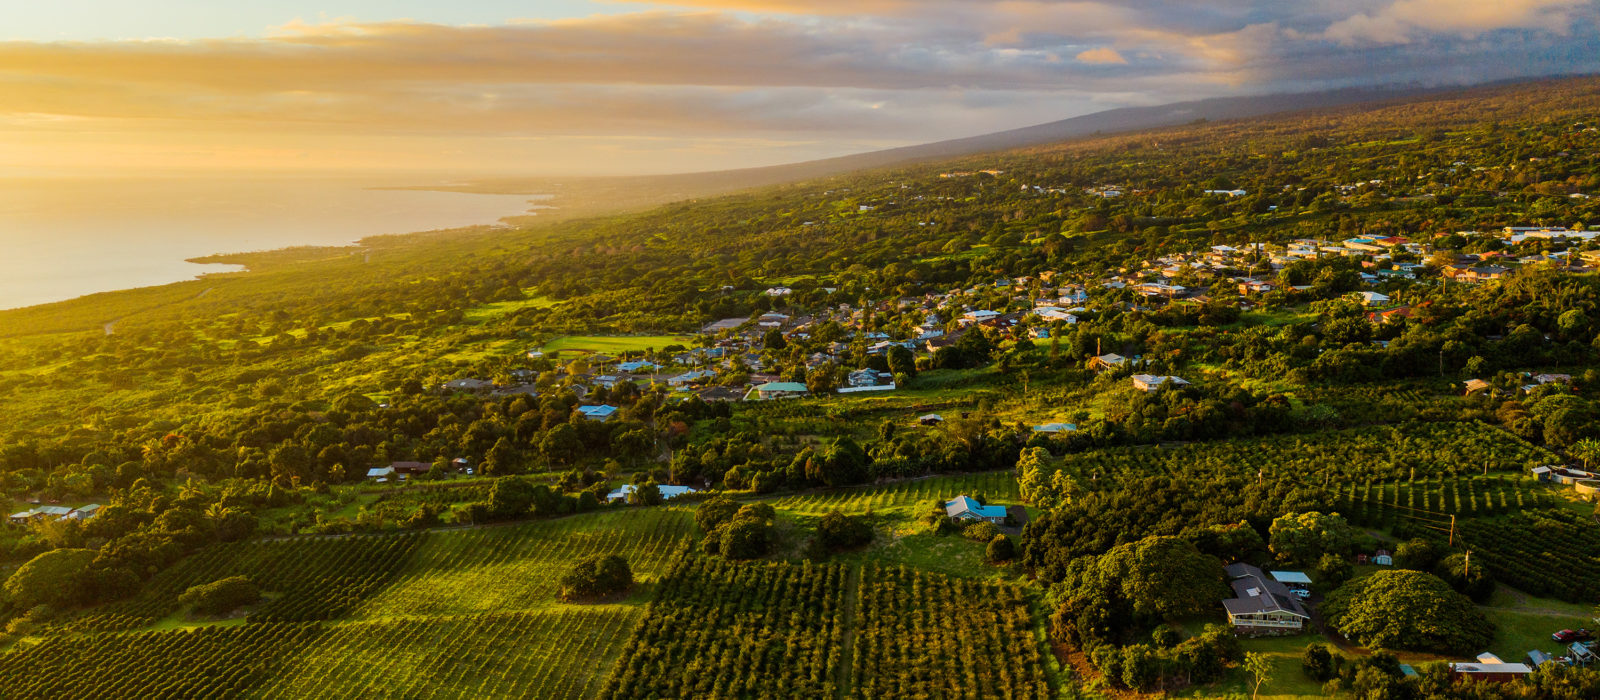 overview of Hawaii farmland with houses and the ocean